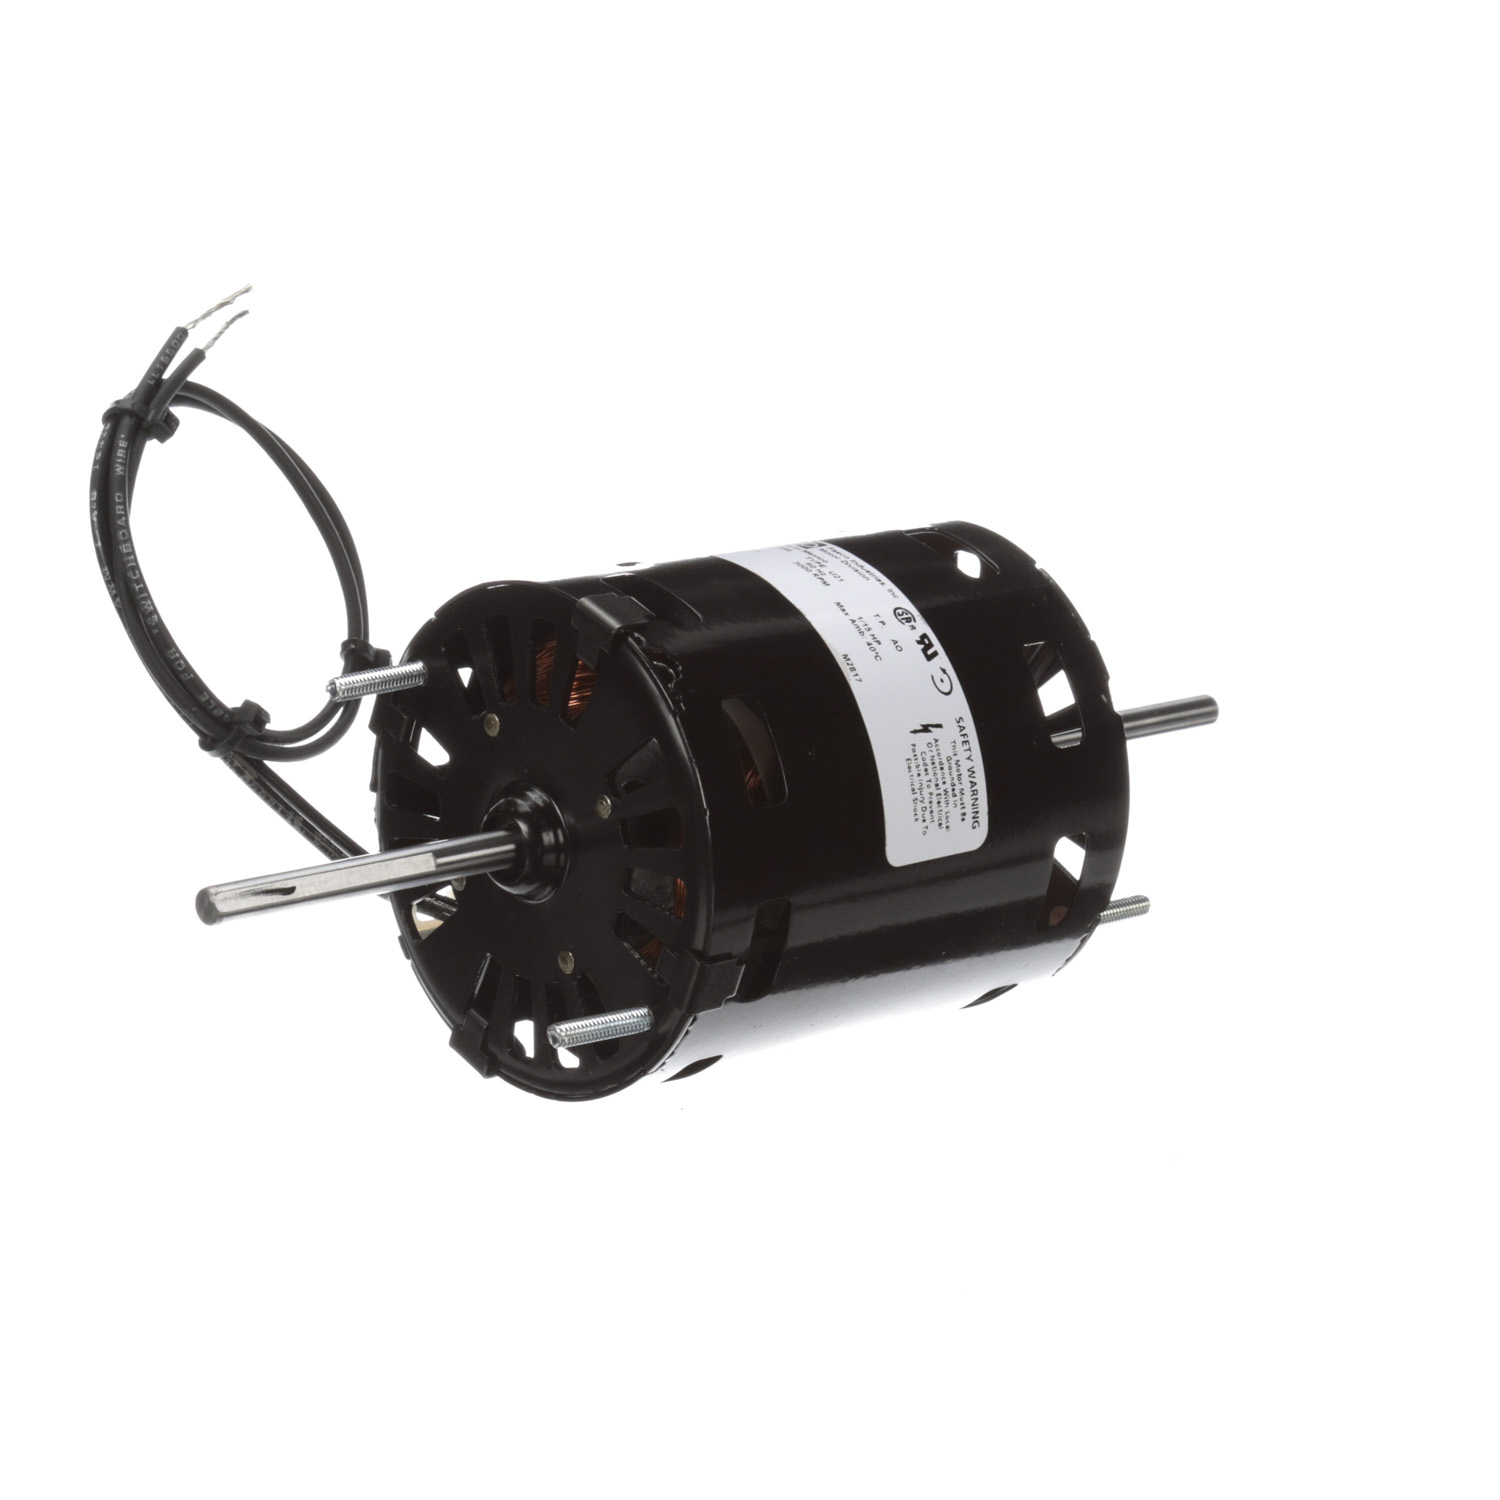 3.3 Inch Diameter Motor 230 Volts 3000 RPM